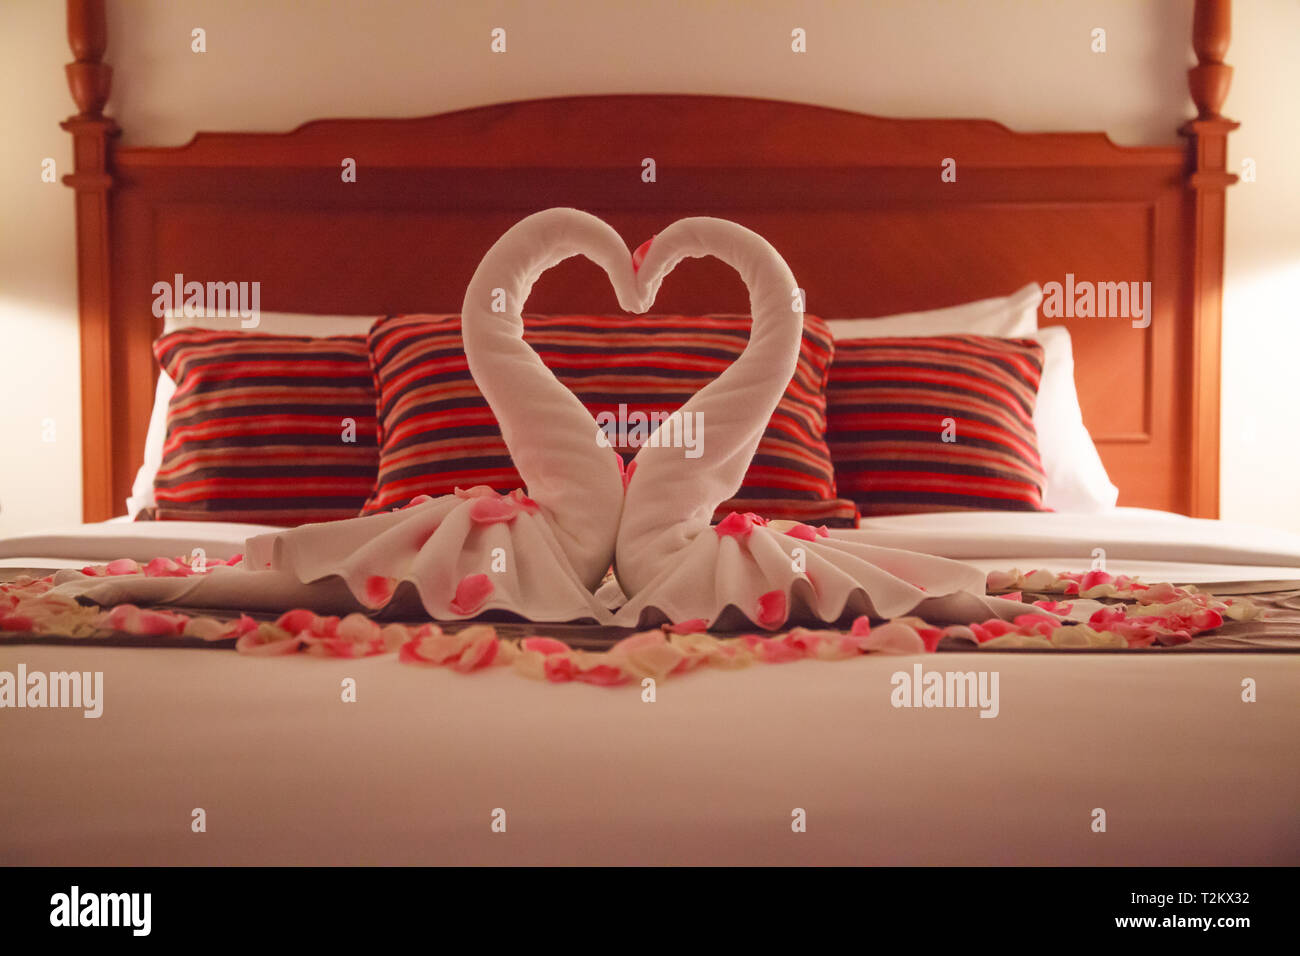 Romantic Bedroom High Resolution Stock Photography And Images Alamy